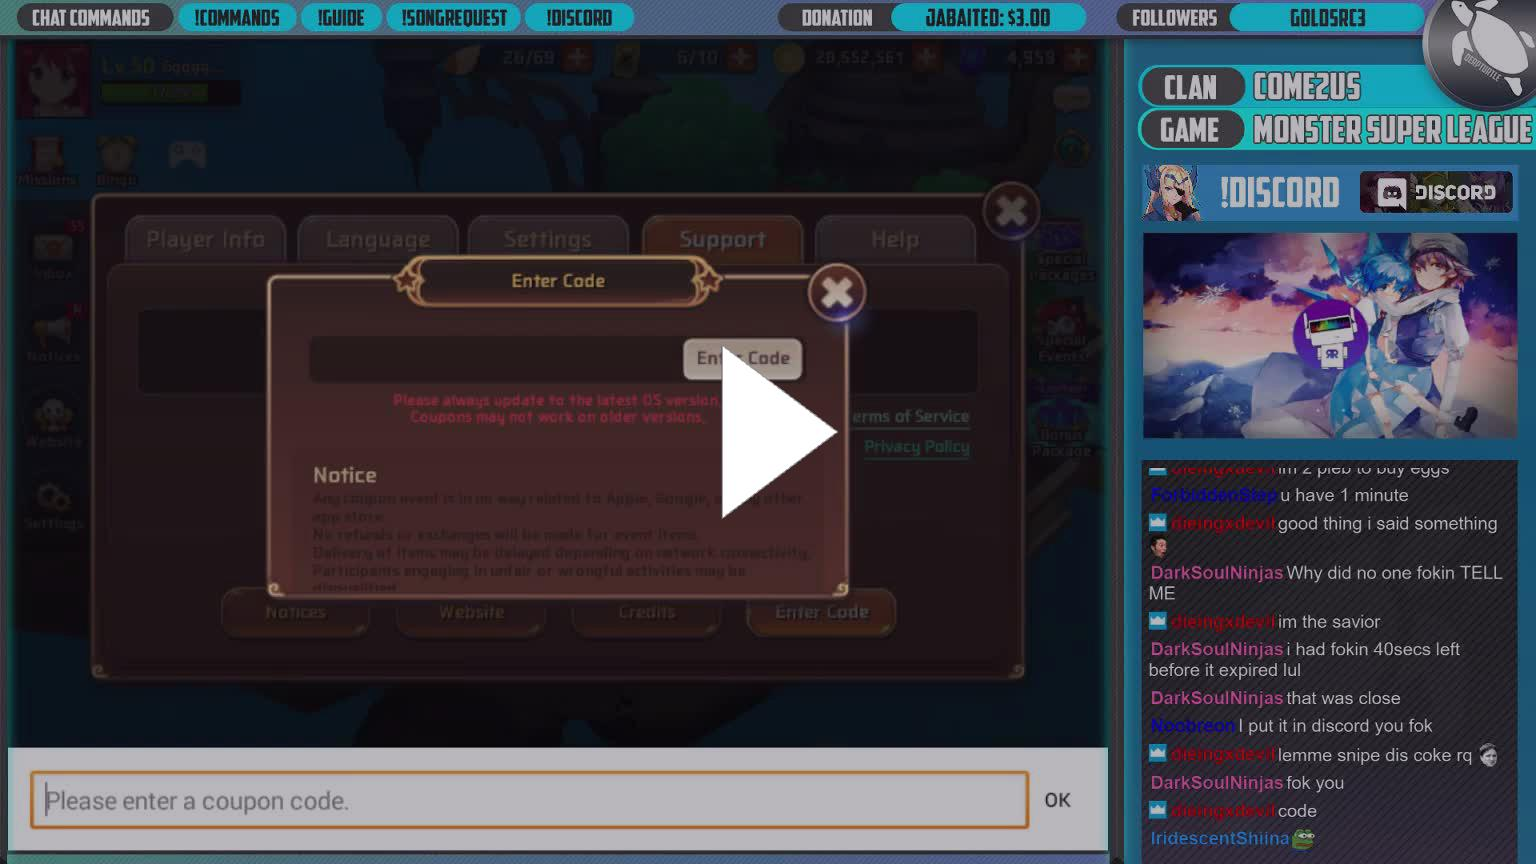 DDerpTurtle - COUPON CODE ACTUALLY WORKS! - Twitch